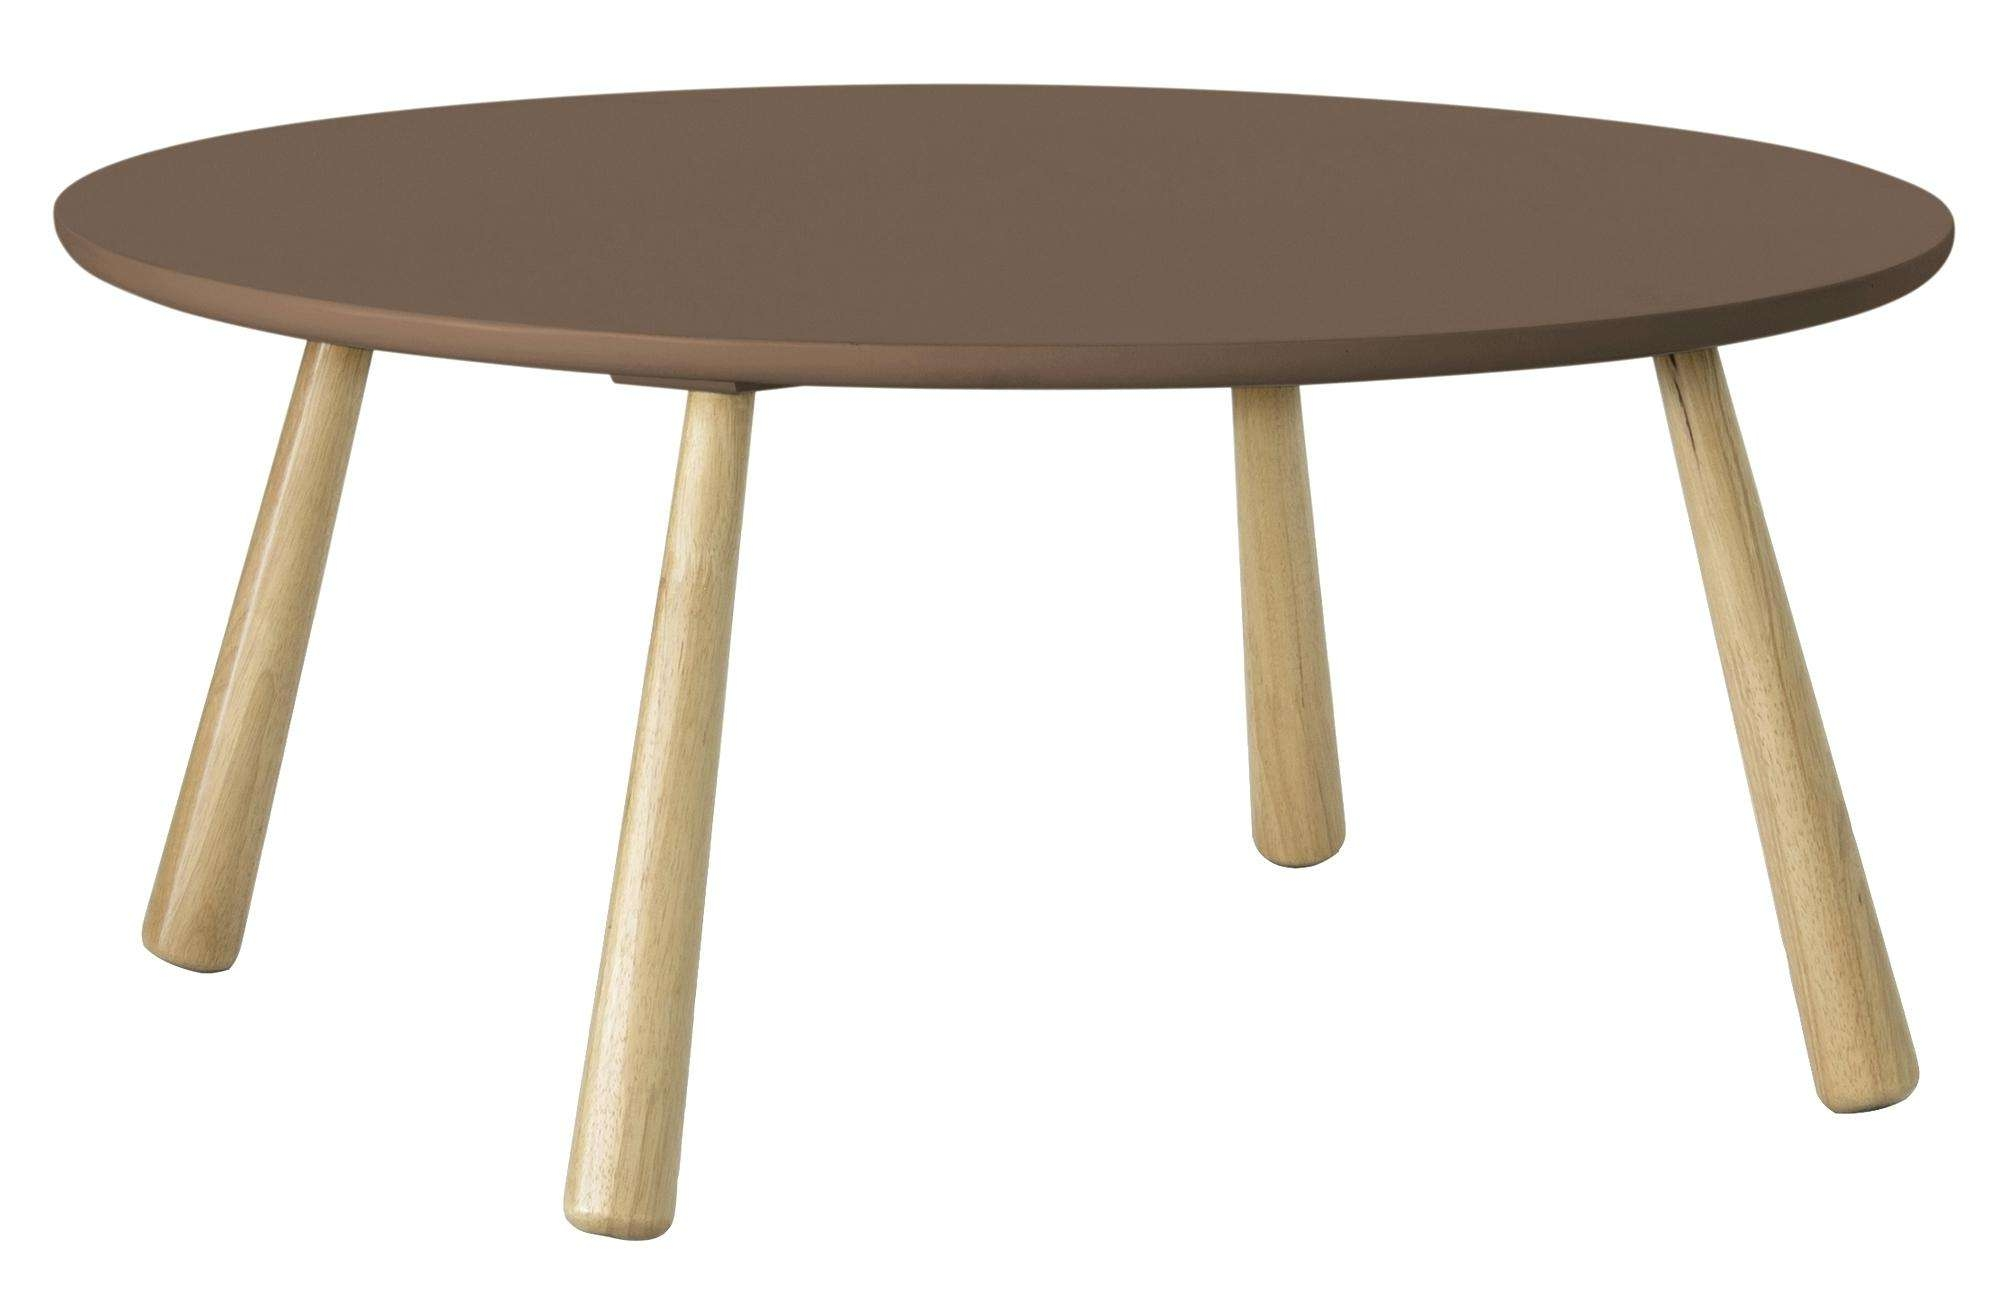 Round Retro Coffee Table Diamond Dining With Solid Oak Legs Within Latest Retro Oak Coffee Tables (View 17 of 20)